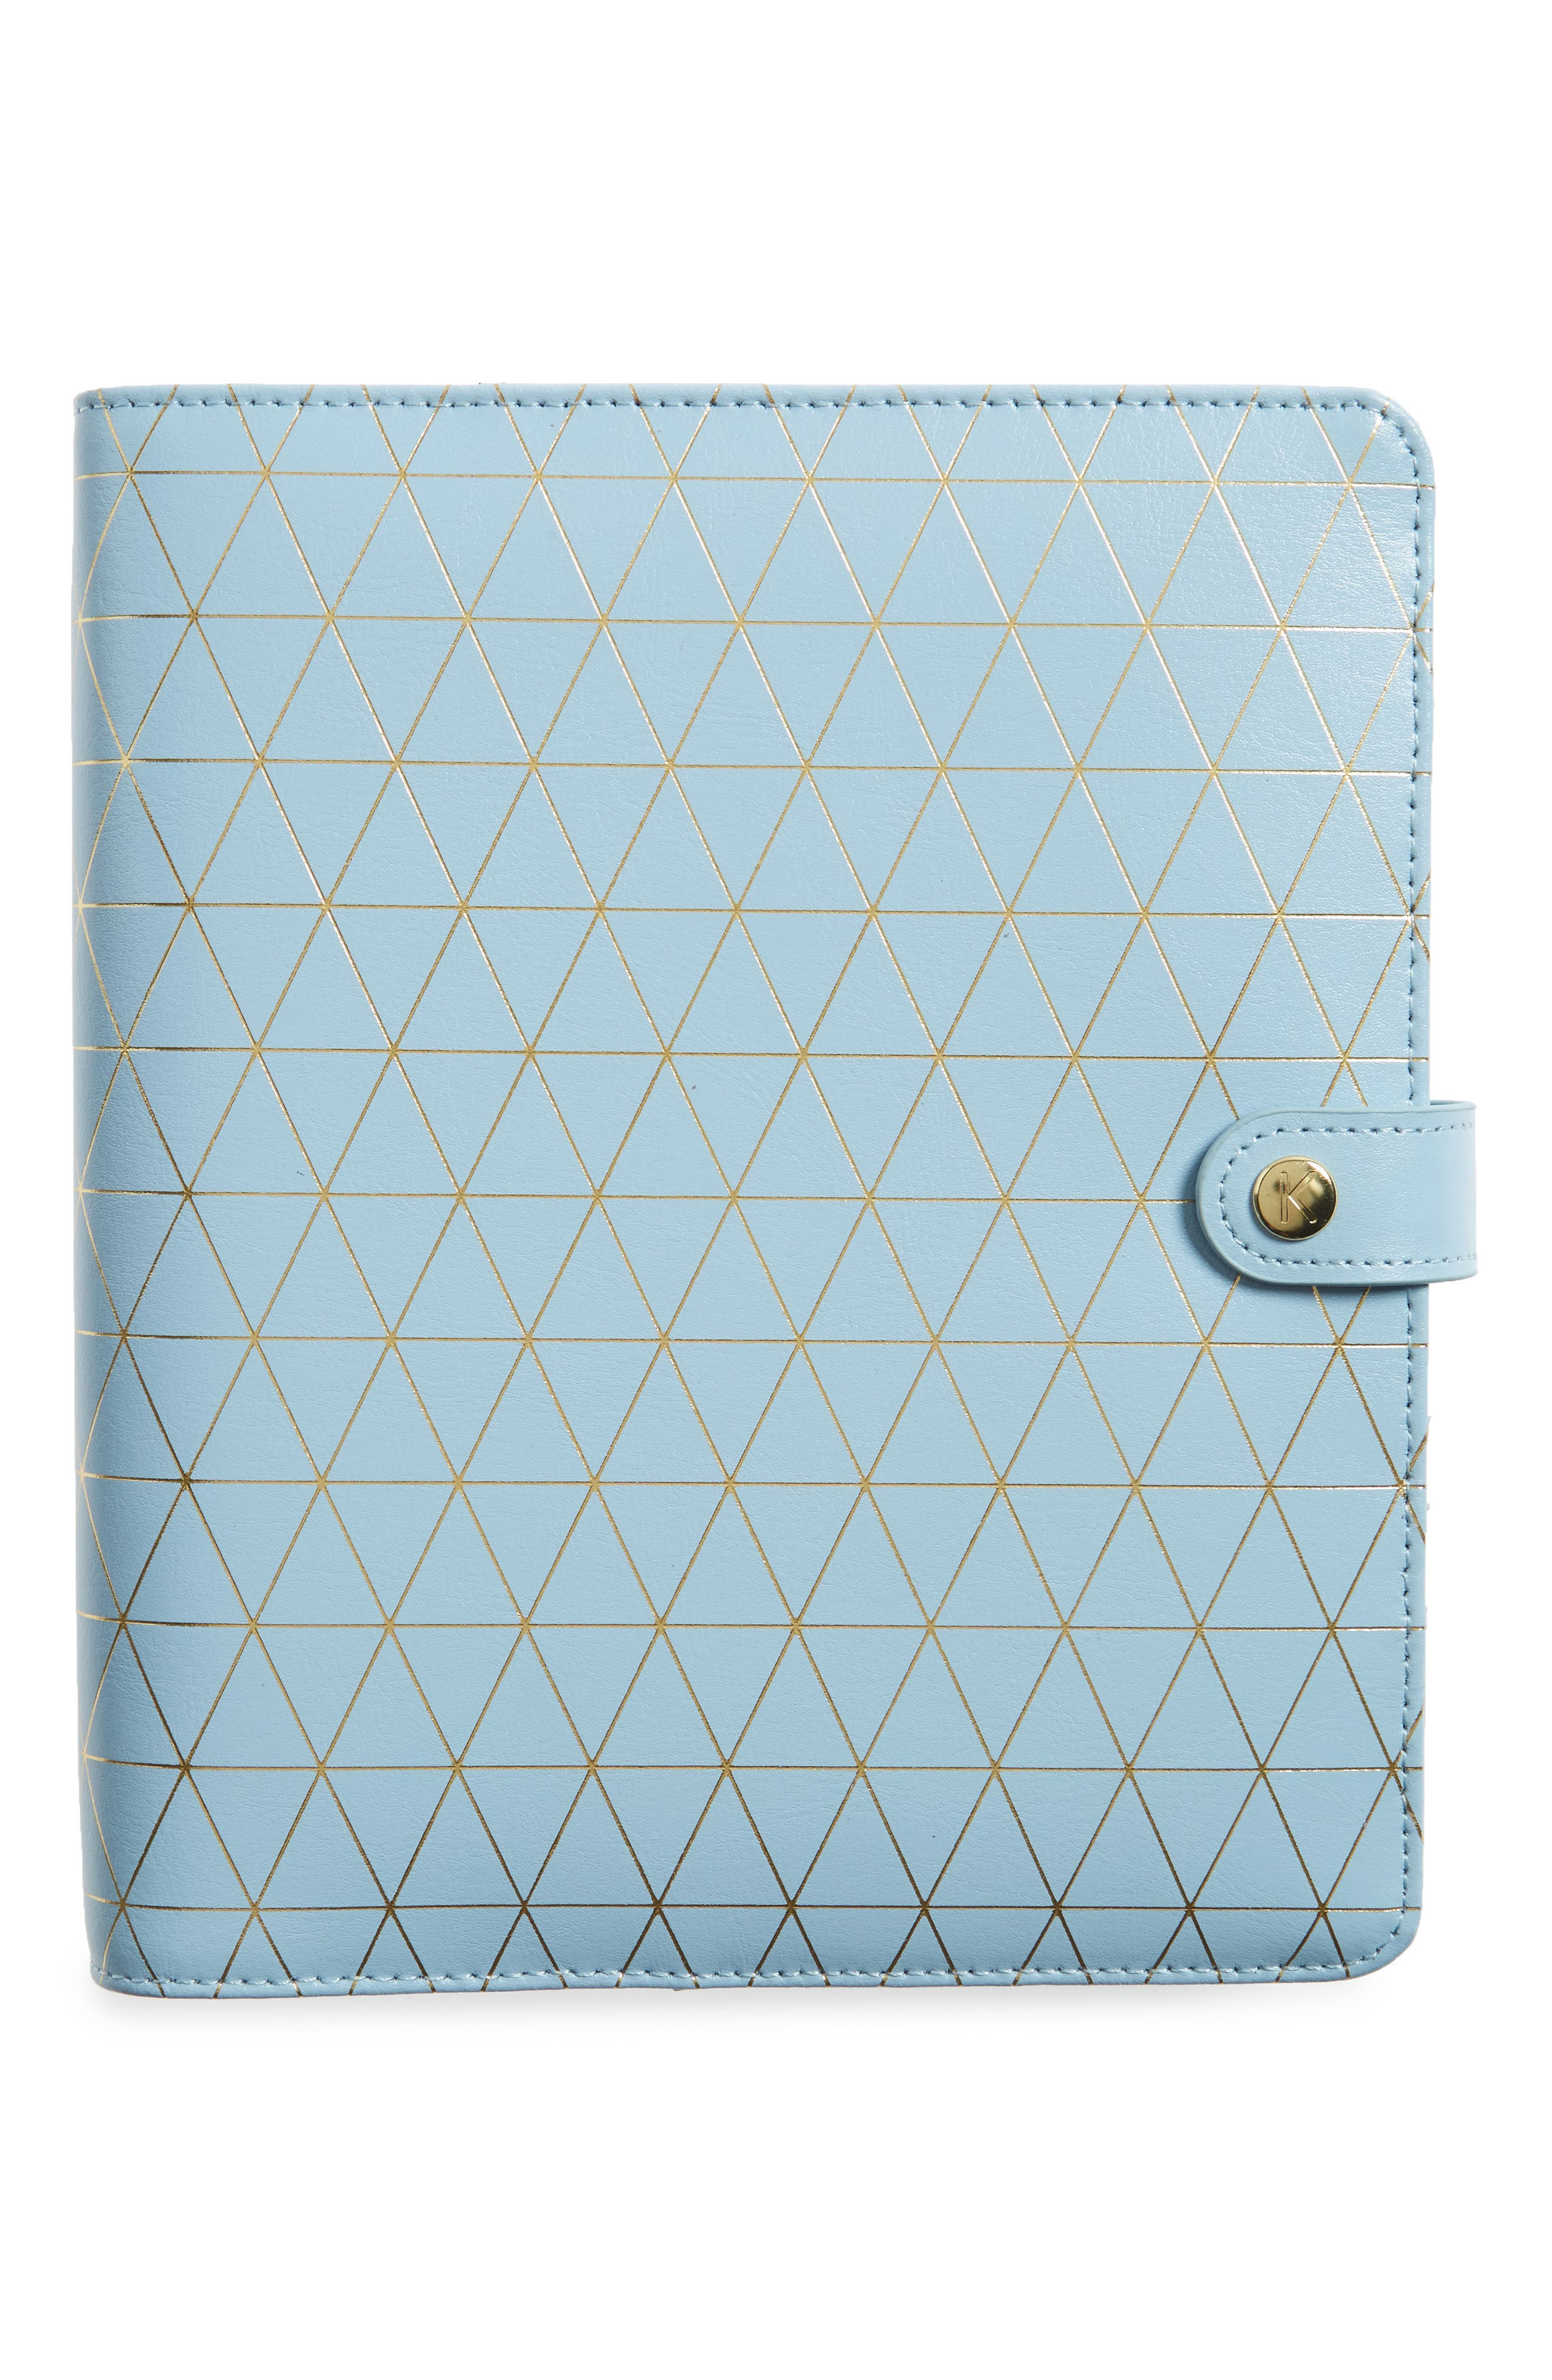 Large Leather Wellness Planner,                         Main,                         color, Light Blue/ Gold